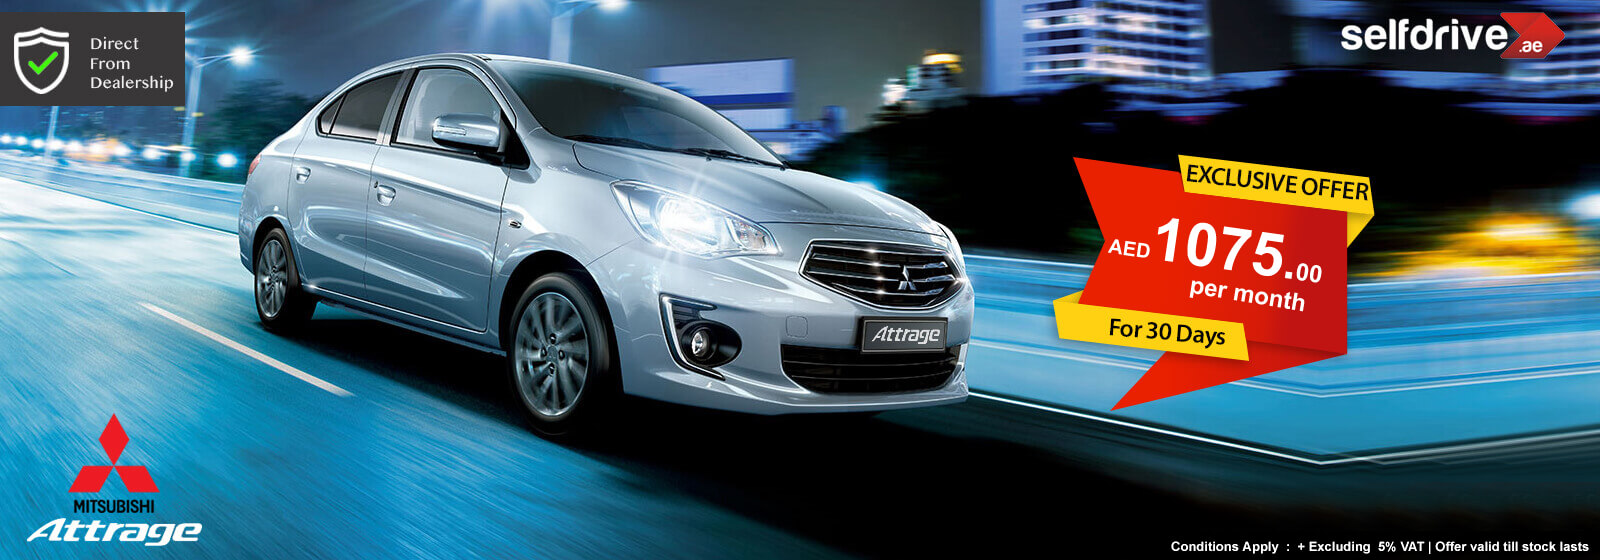 Rent a Car Dubai Mitsubishi Attrage